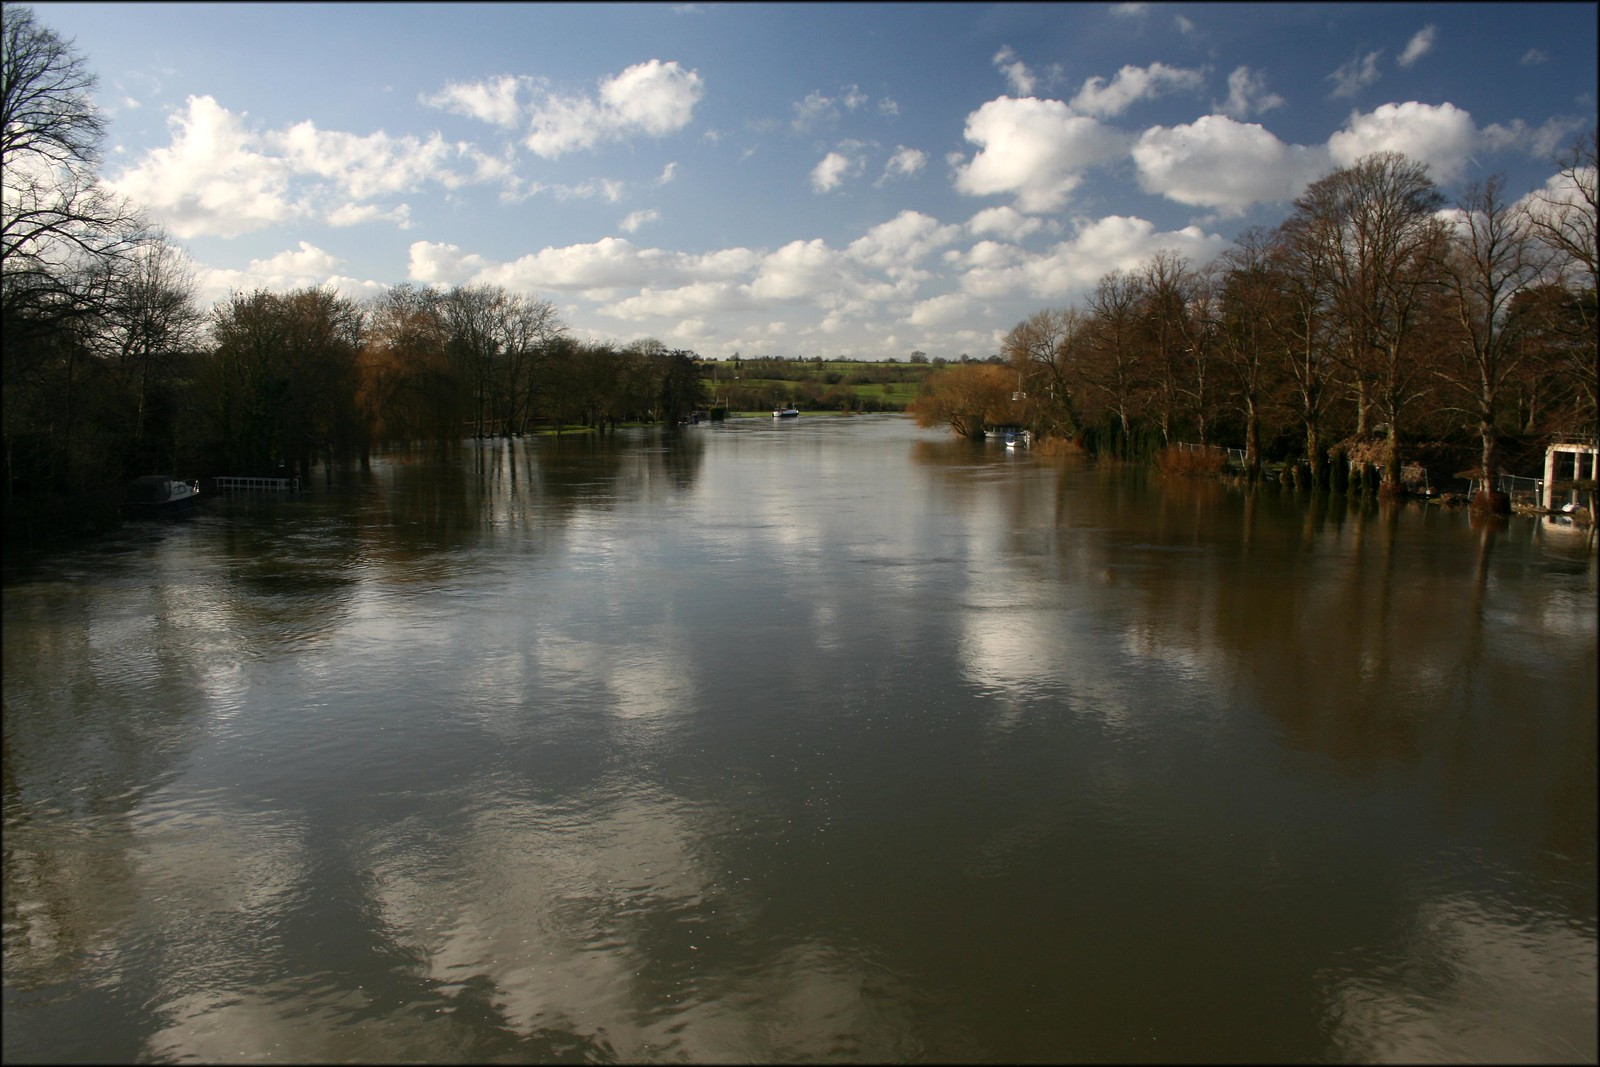 View from Cookham Bridge